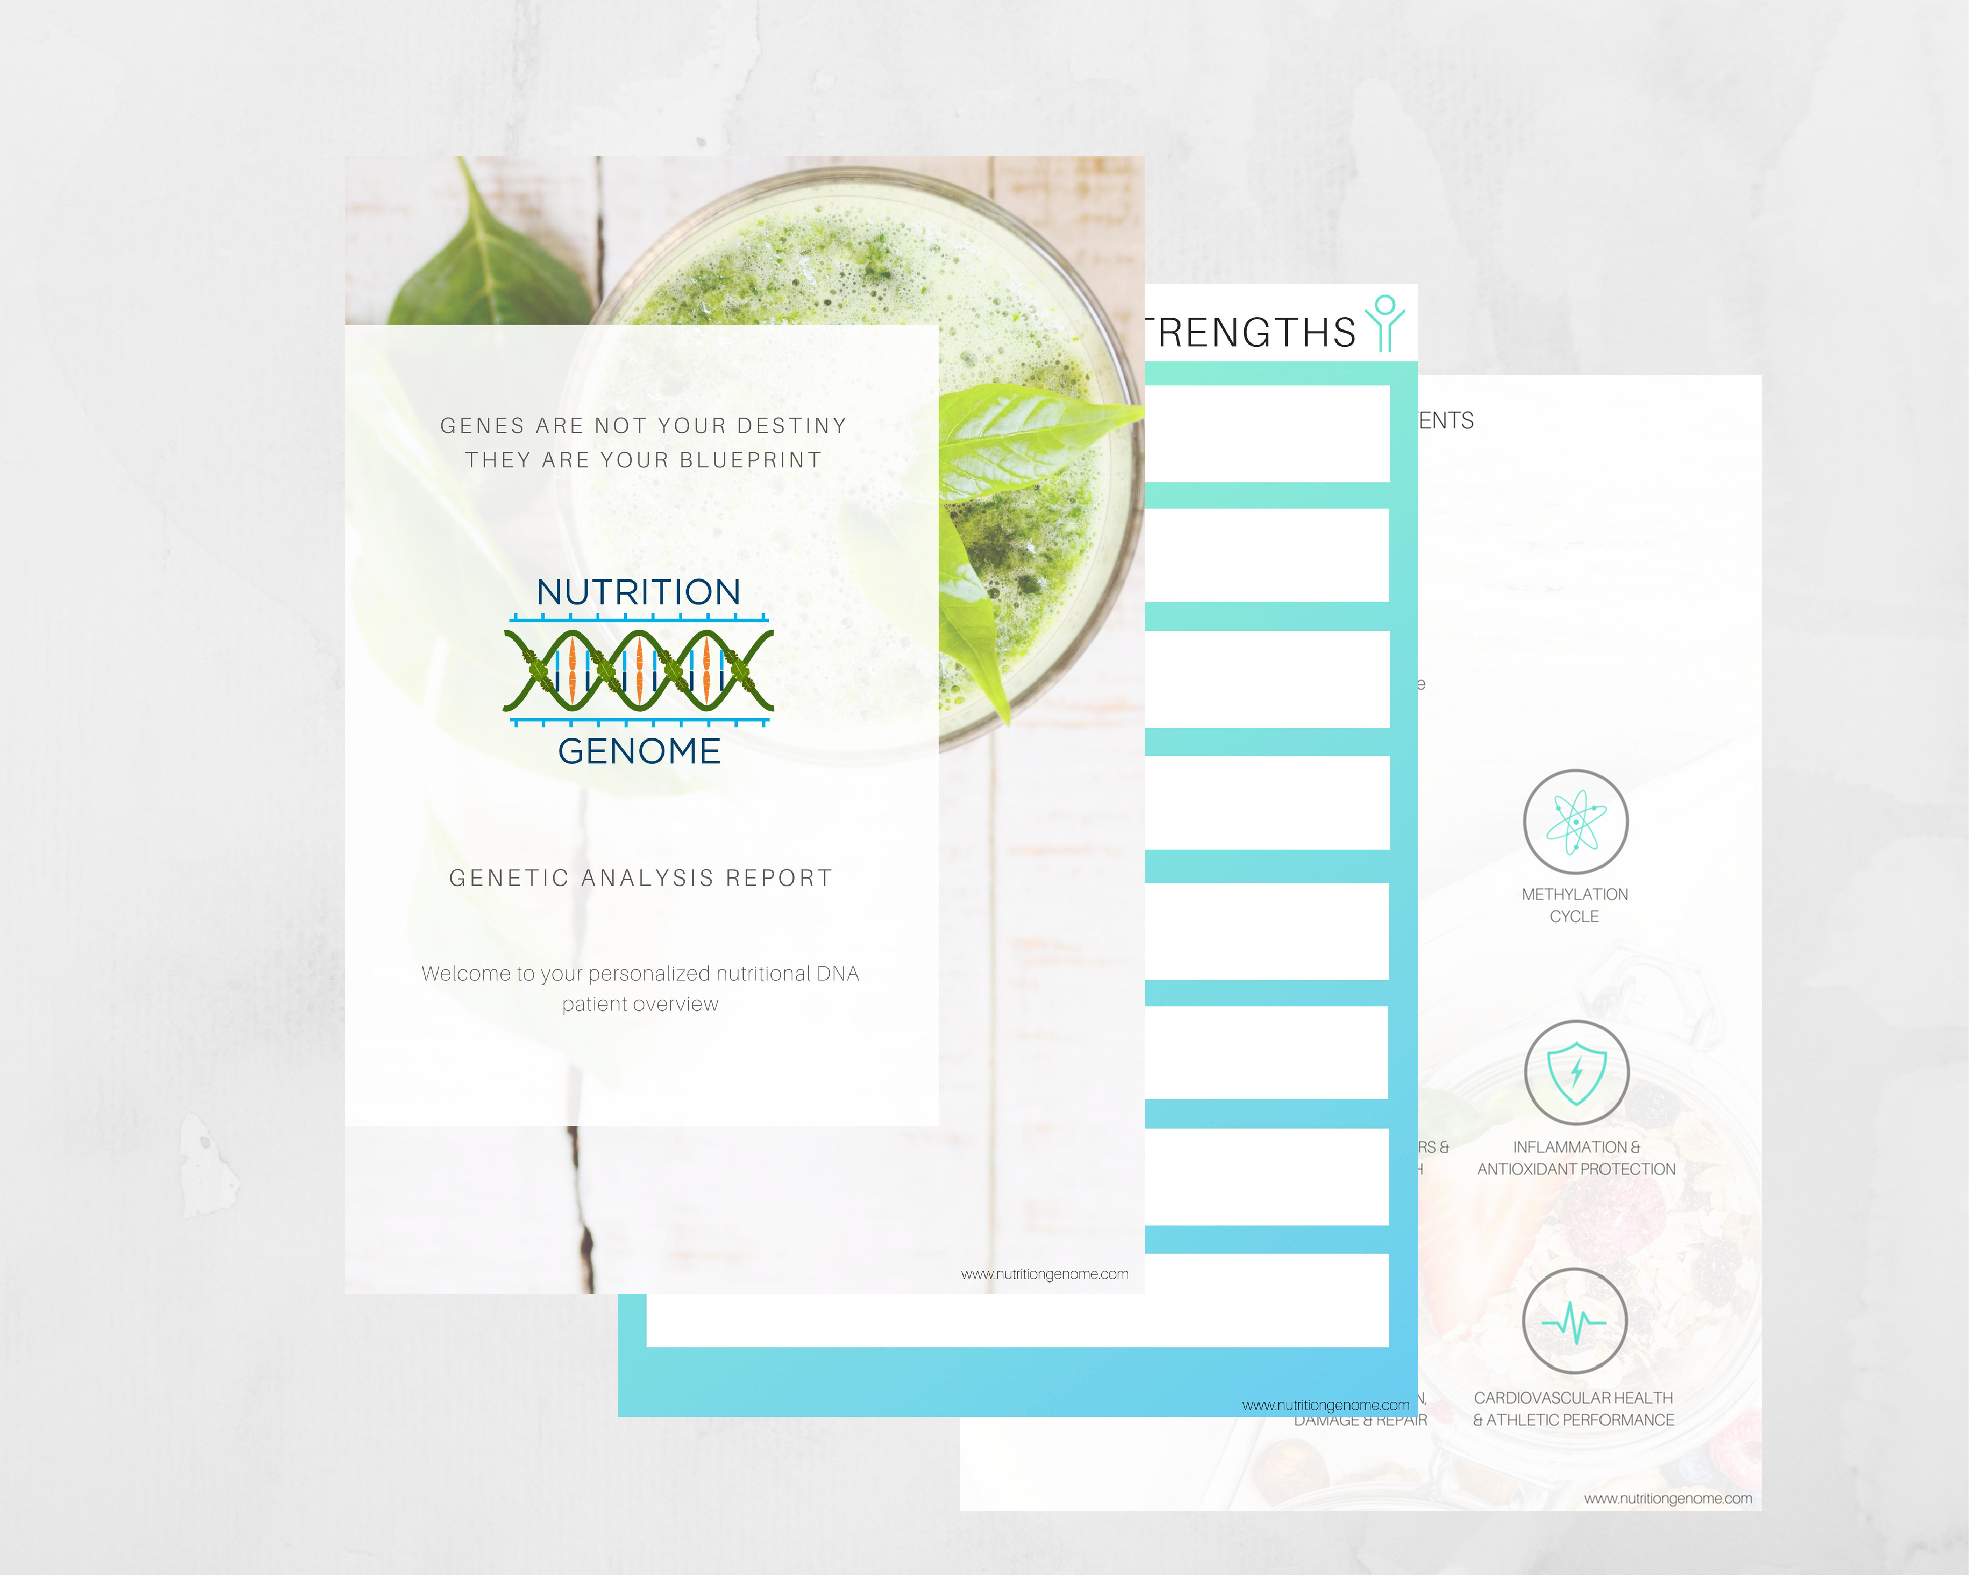 Topic 4: Navigating the Nutrition Genome Report